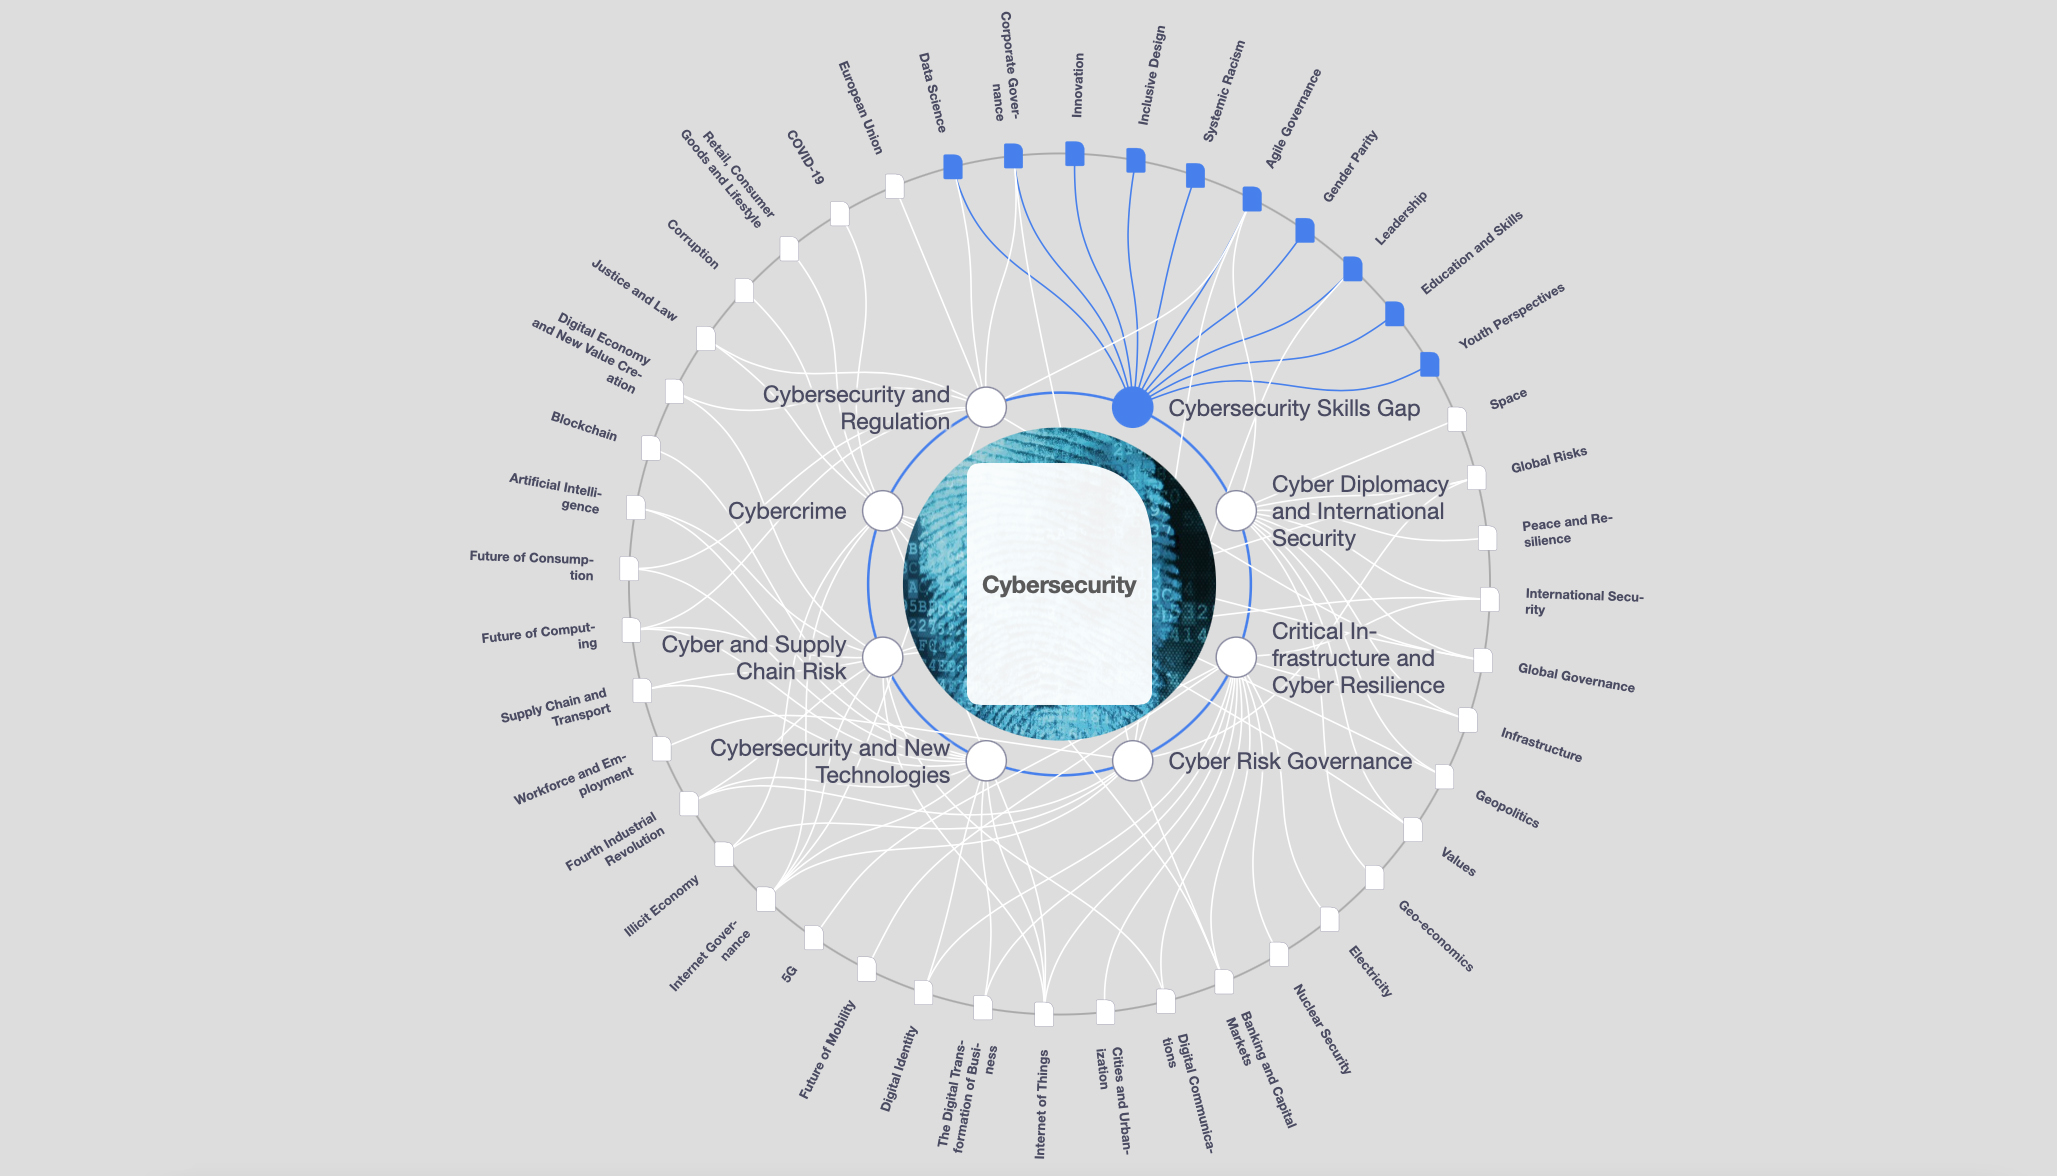 SEI Maps Out Cybersecurity for World Economic Forum